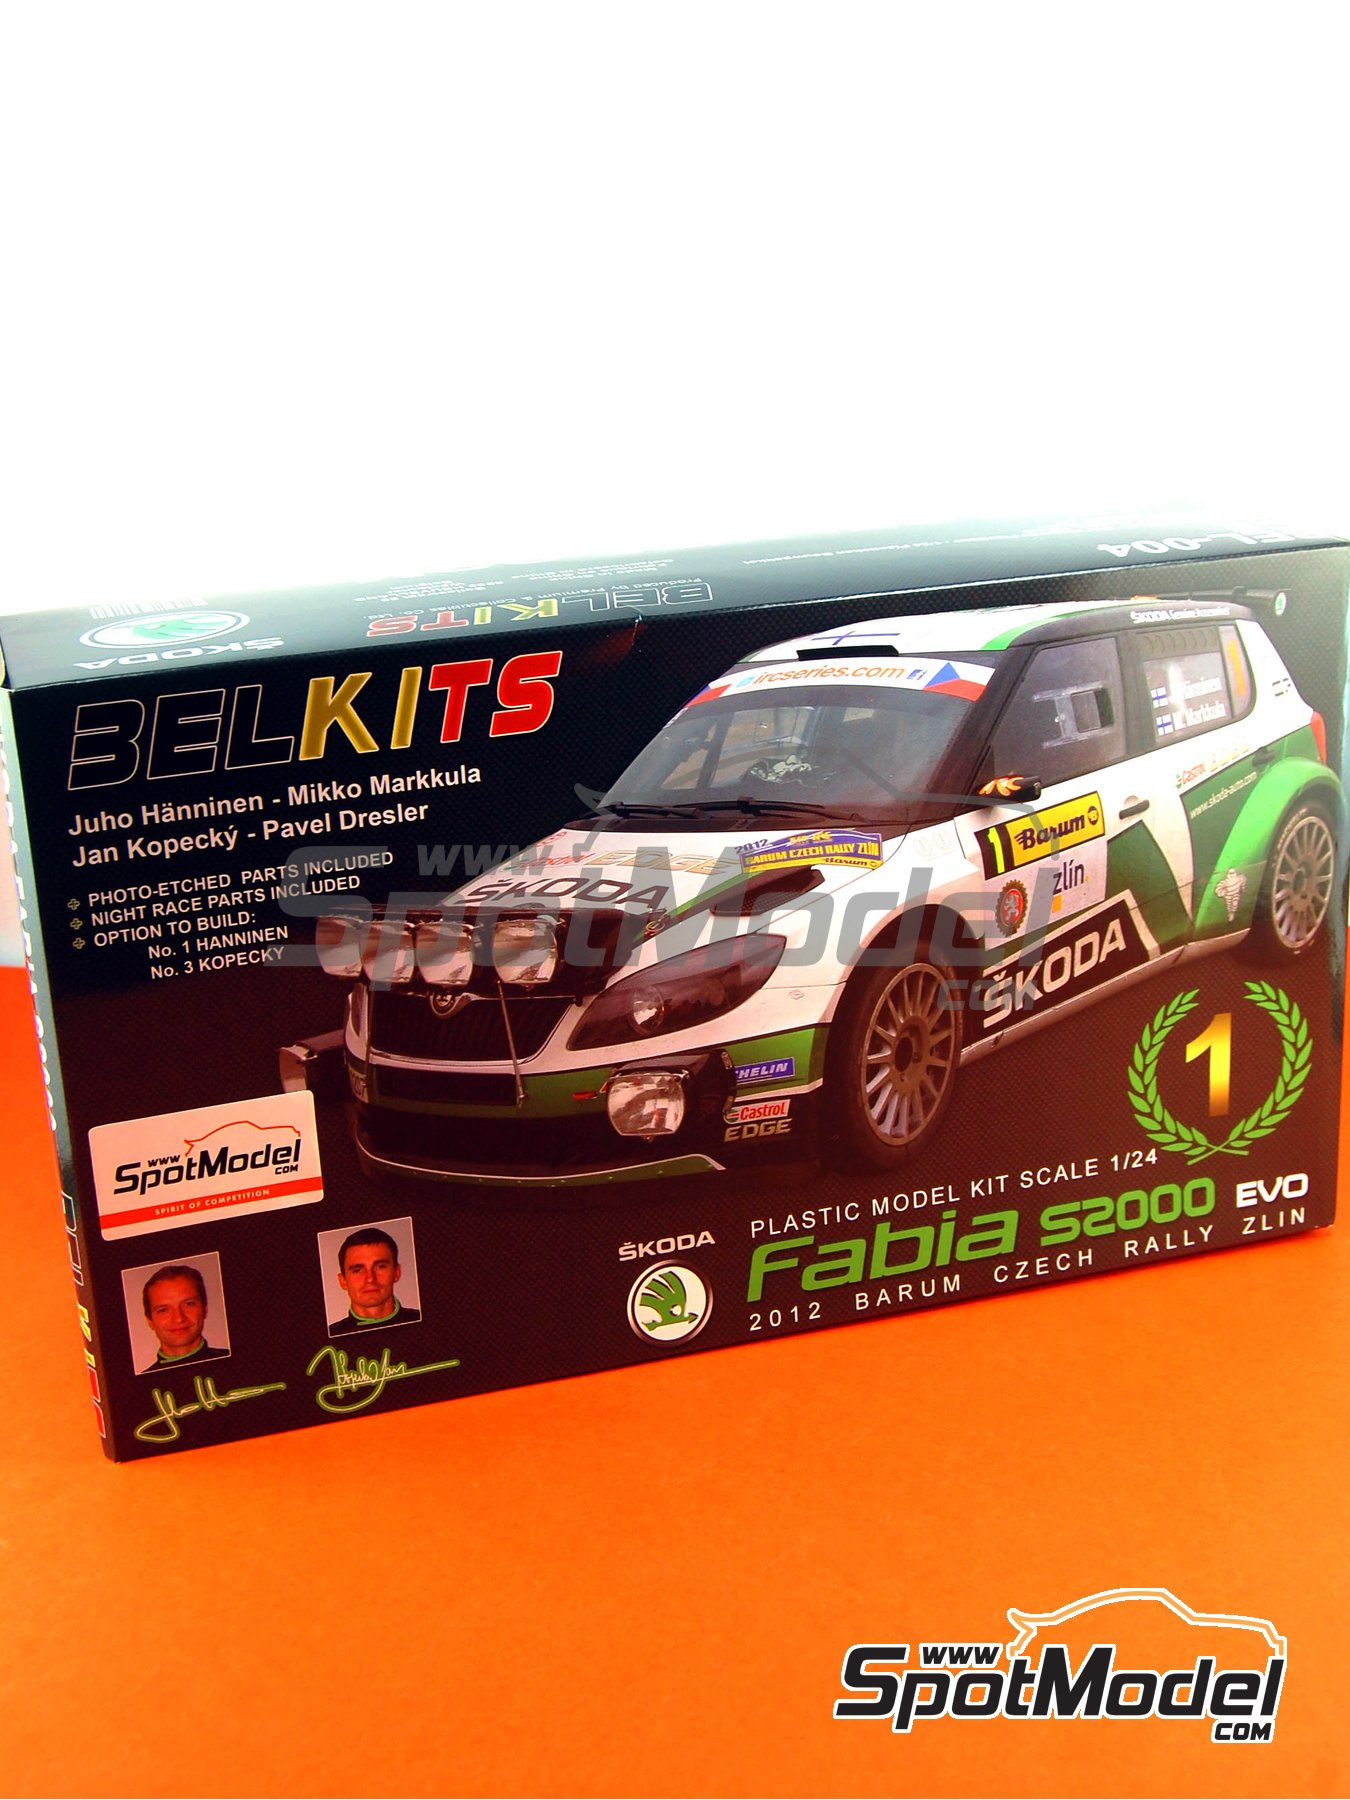 Skoda Fabia S2000 Evo - Barum Czech Rally 2012 | Model car kit in 1/24 scale manufactured by Belkits (ref. BEL-004, also BEL004) image